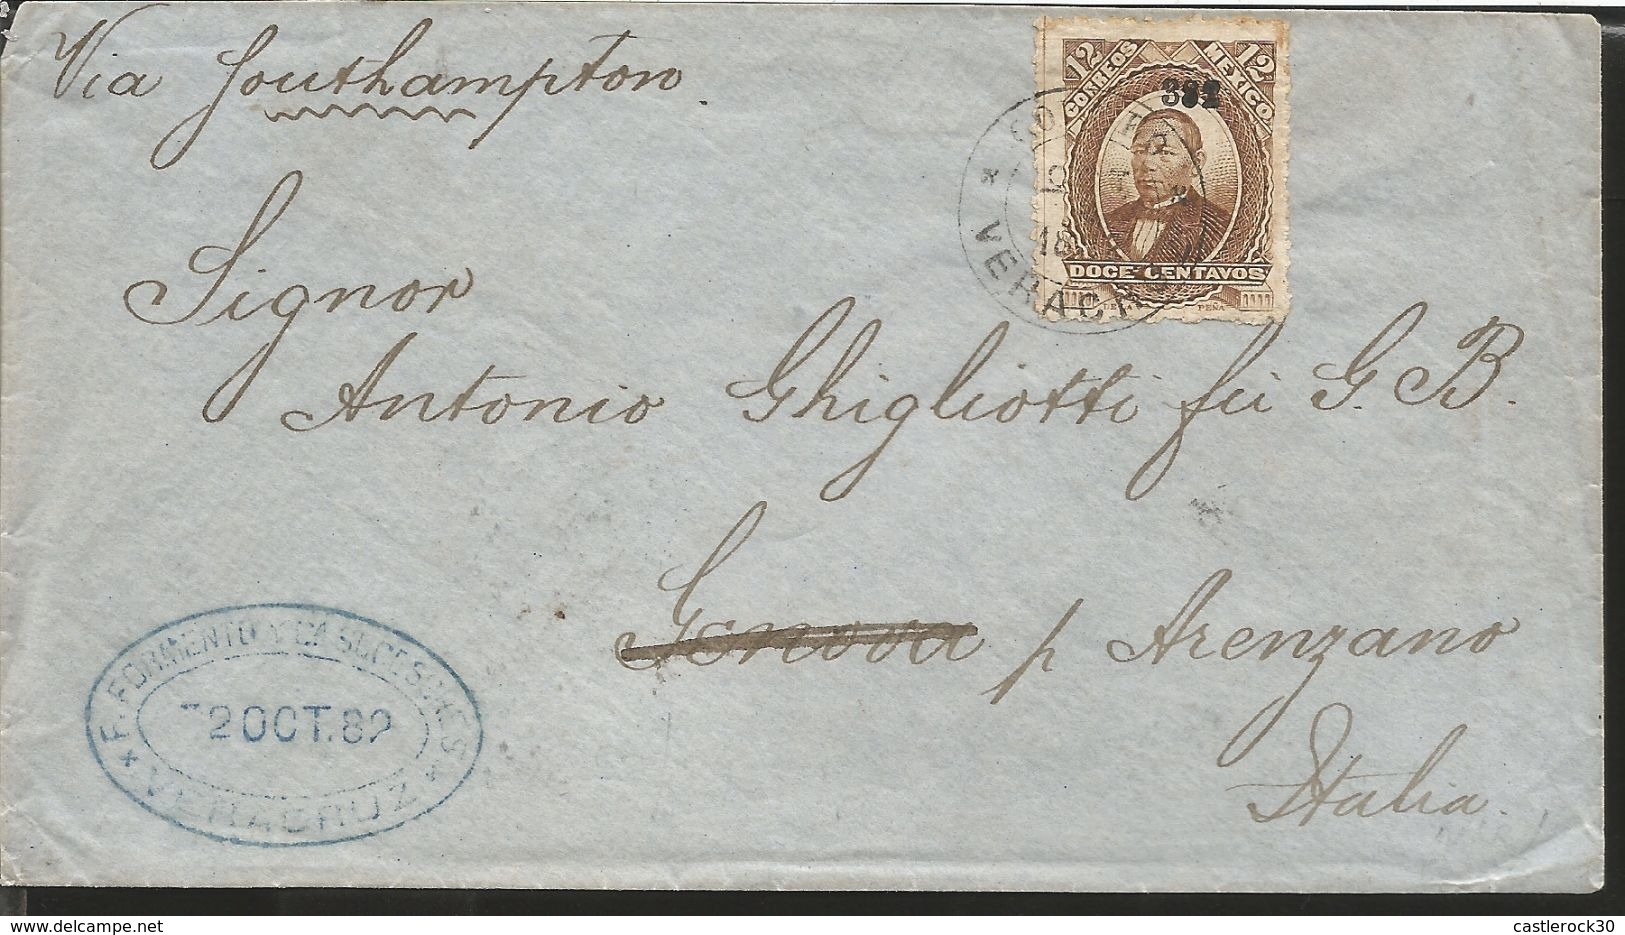 J) 1882 MEXICO, HIDALGO'S HEAD, 12 CENTS BROWN, BLUE CANCELLATION, AIRMAIL, CIRCULATED COVER, FROM MEXICO TO ITALIA - Mexico